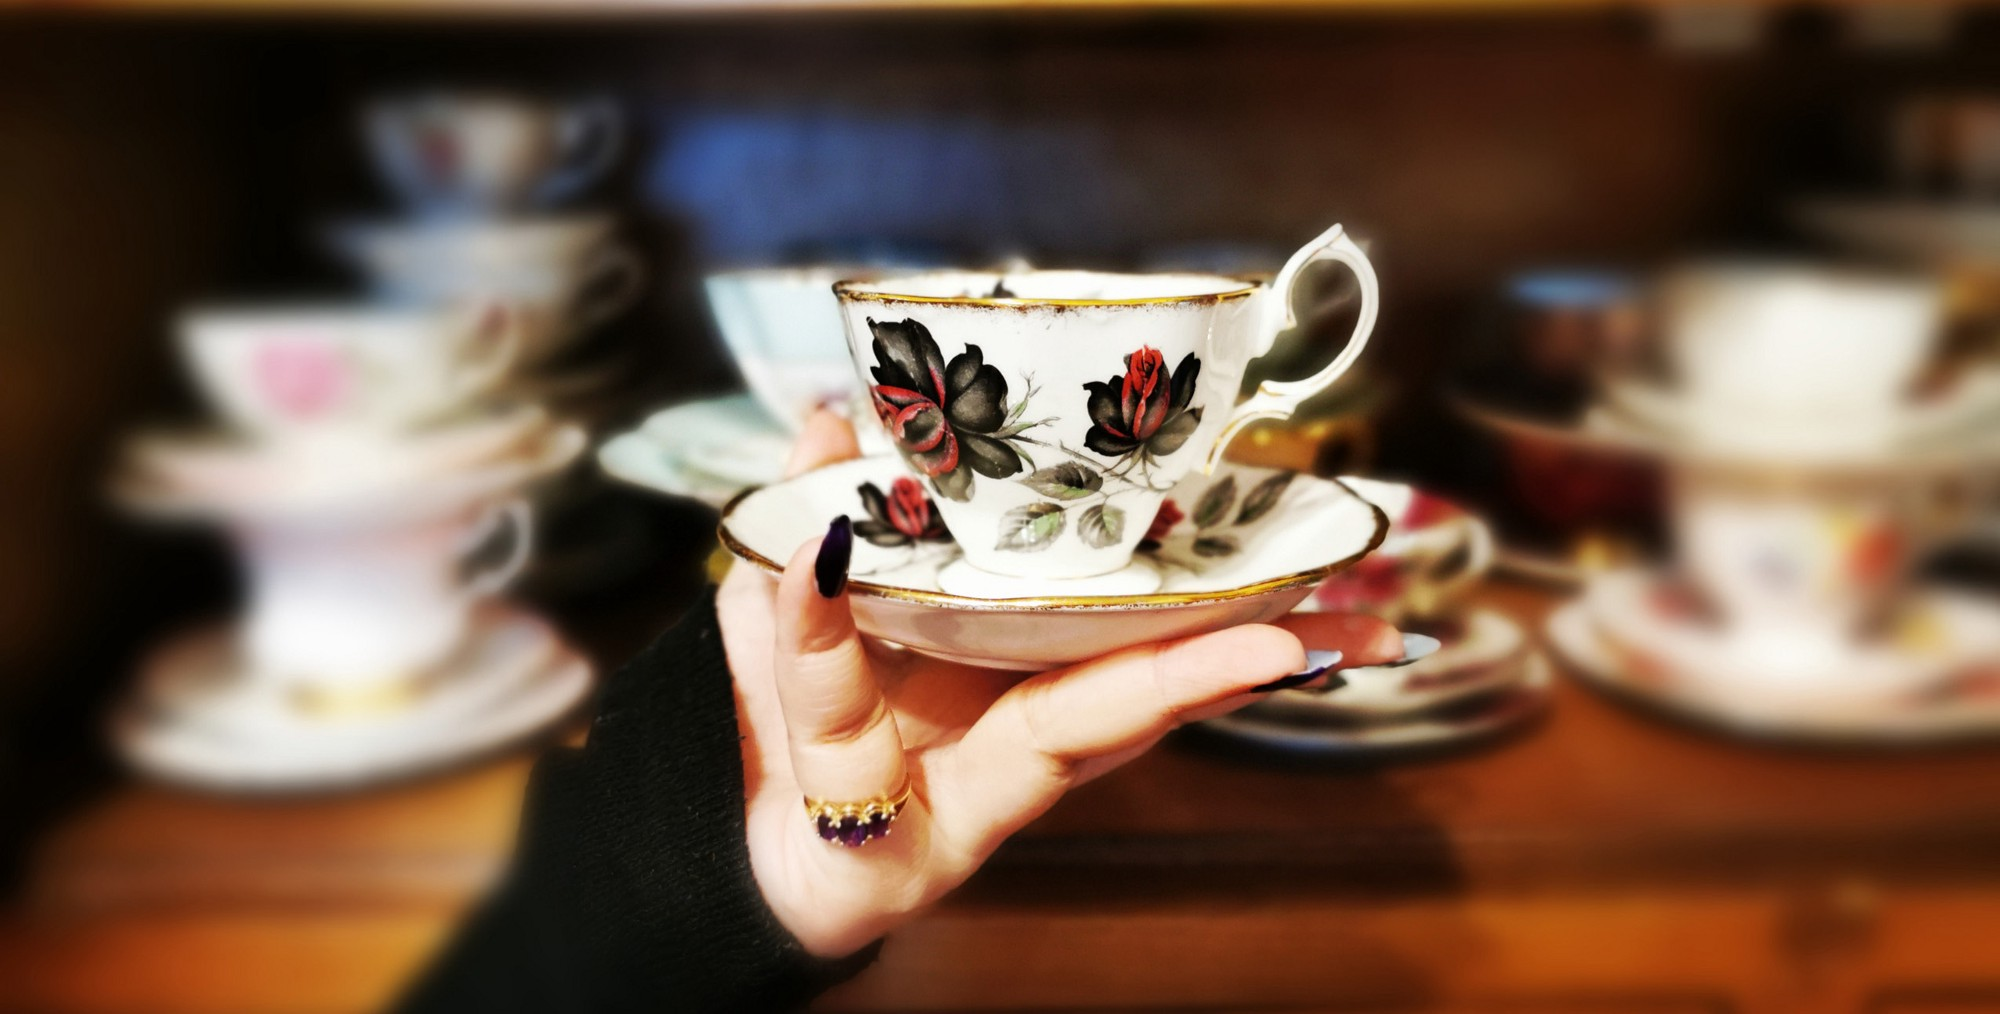 Author holds vintage Royal Albert Masquerade Tea Cup in hand.